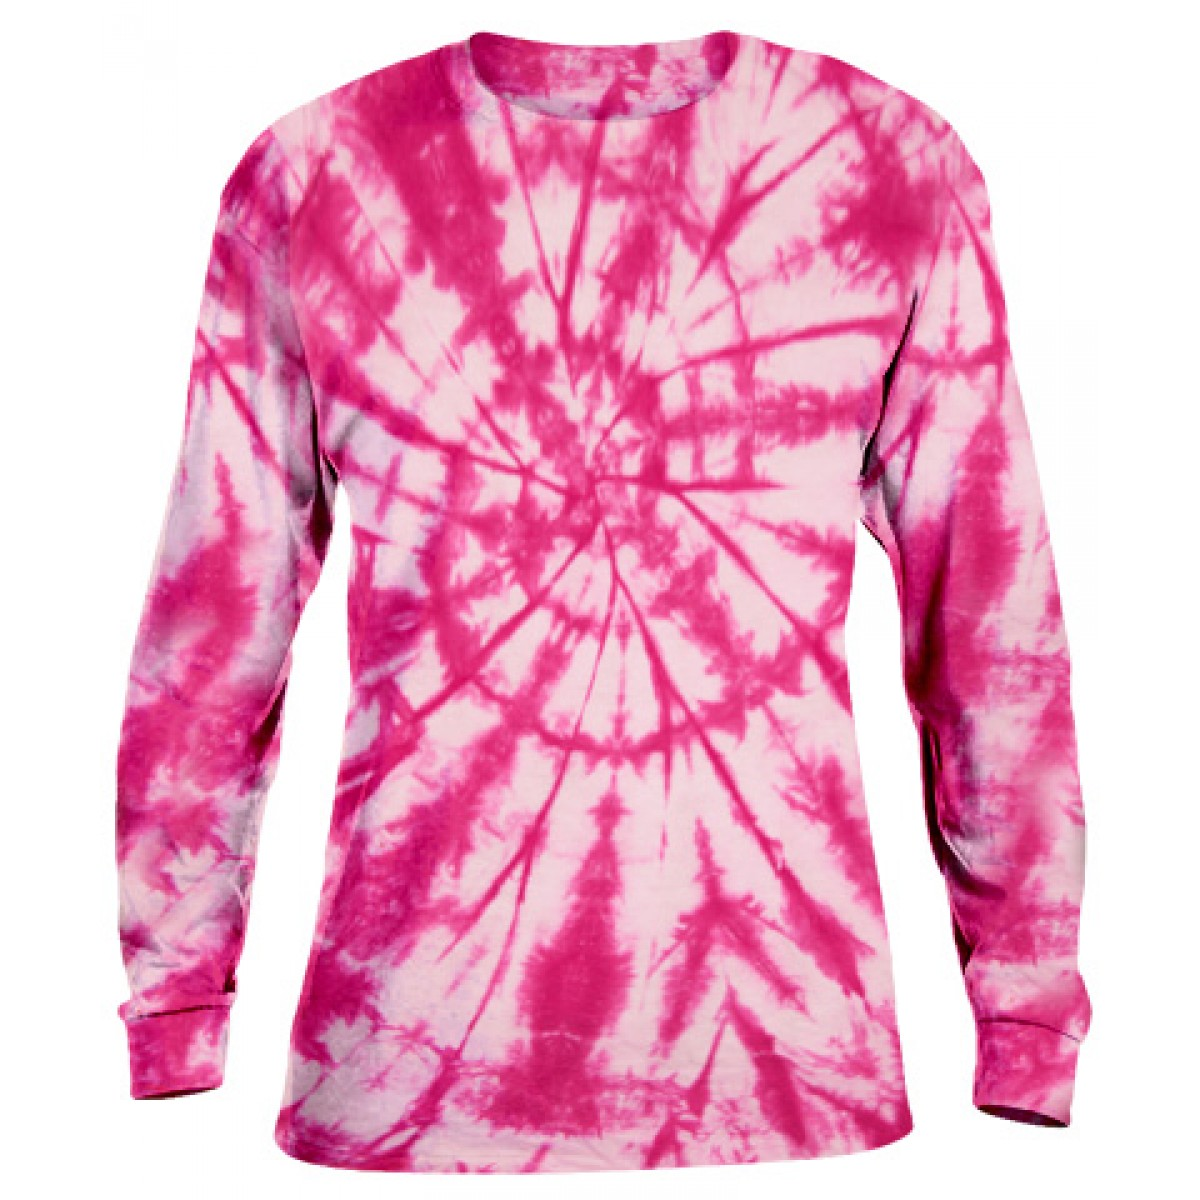 Tie-Dye Long Sleeve Shirt -Fuscia-YS